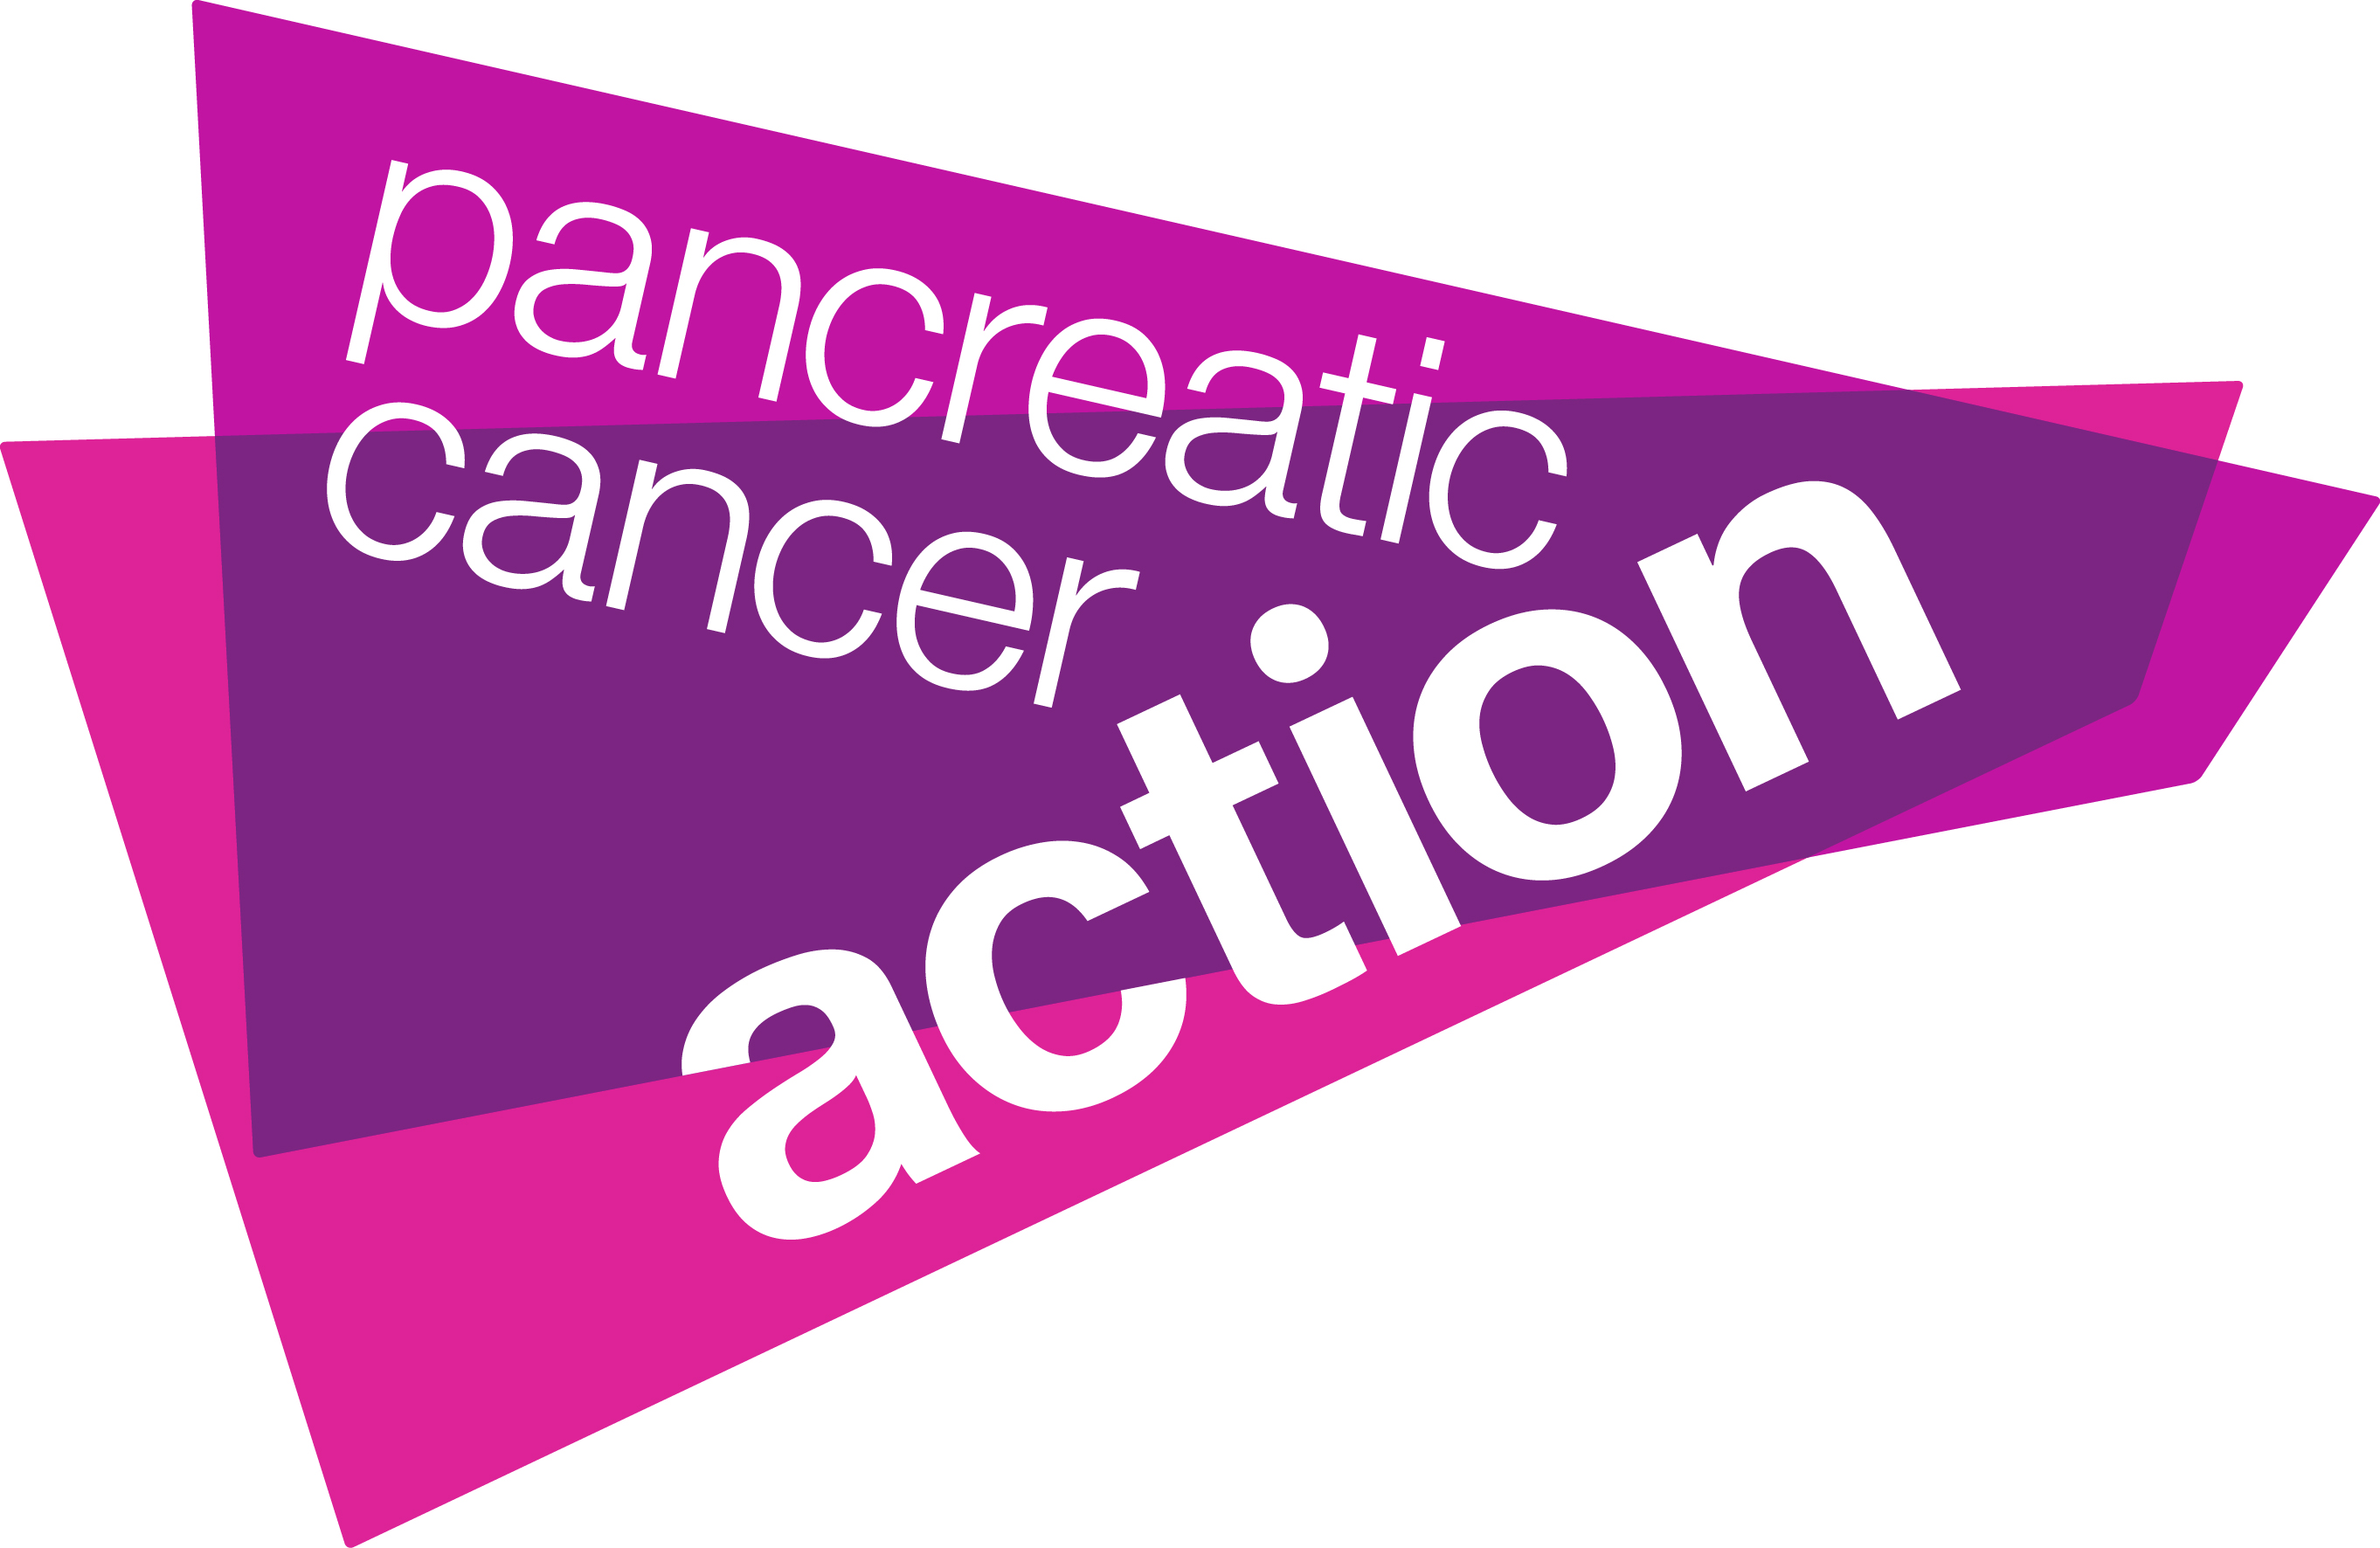 Pancreatic Cancer Charity Launches Fresh New Brand ...